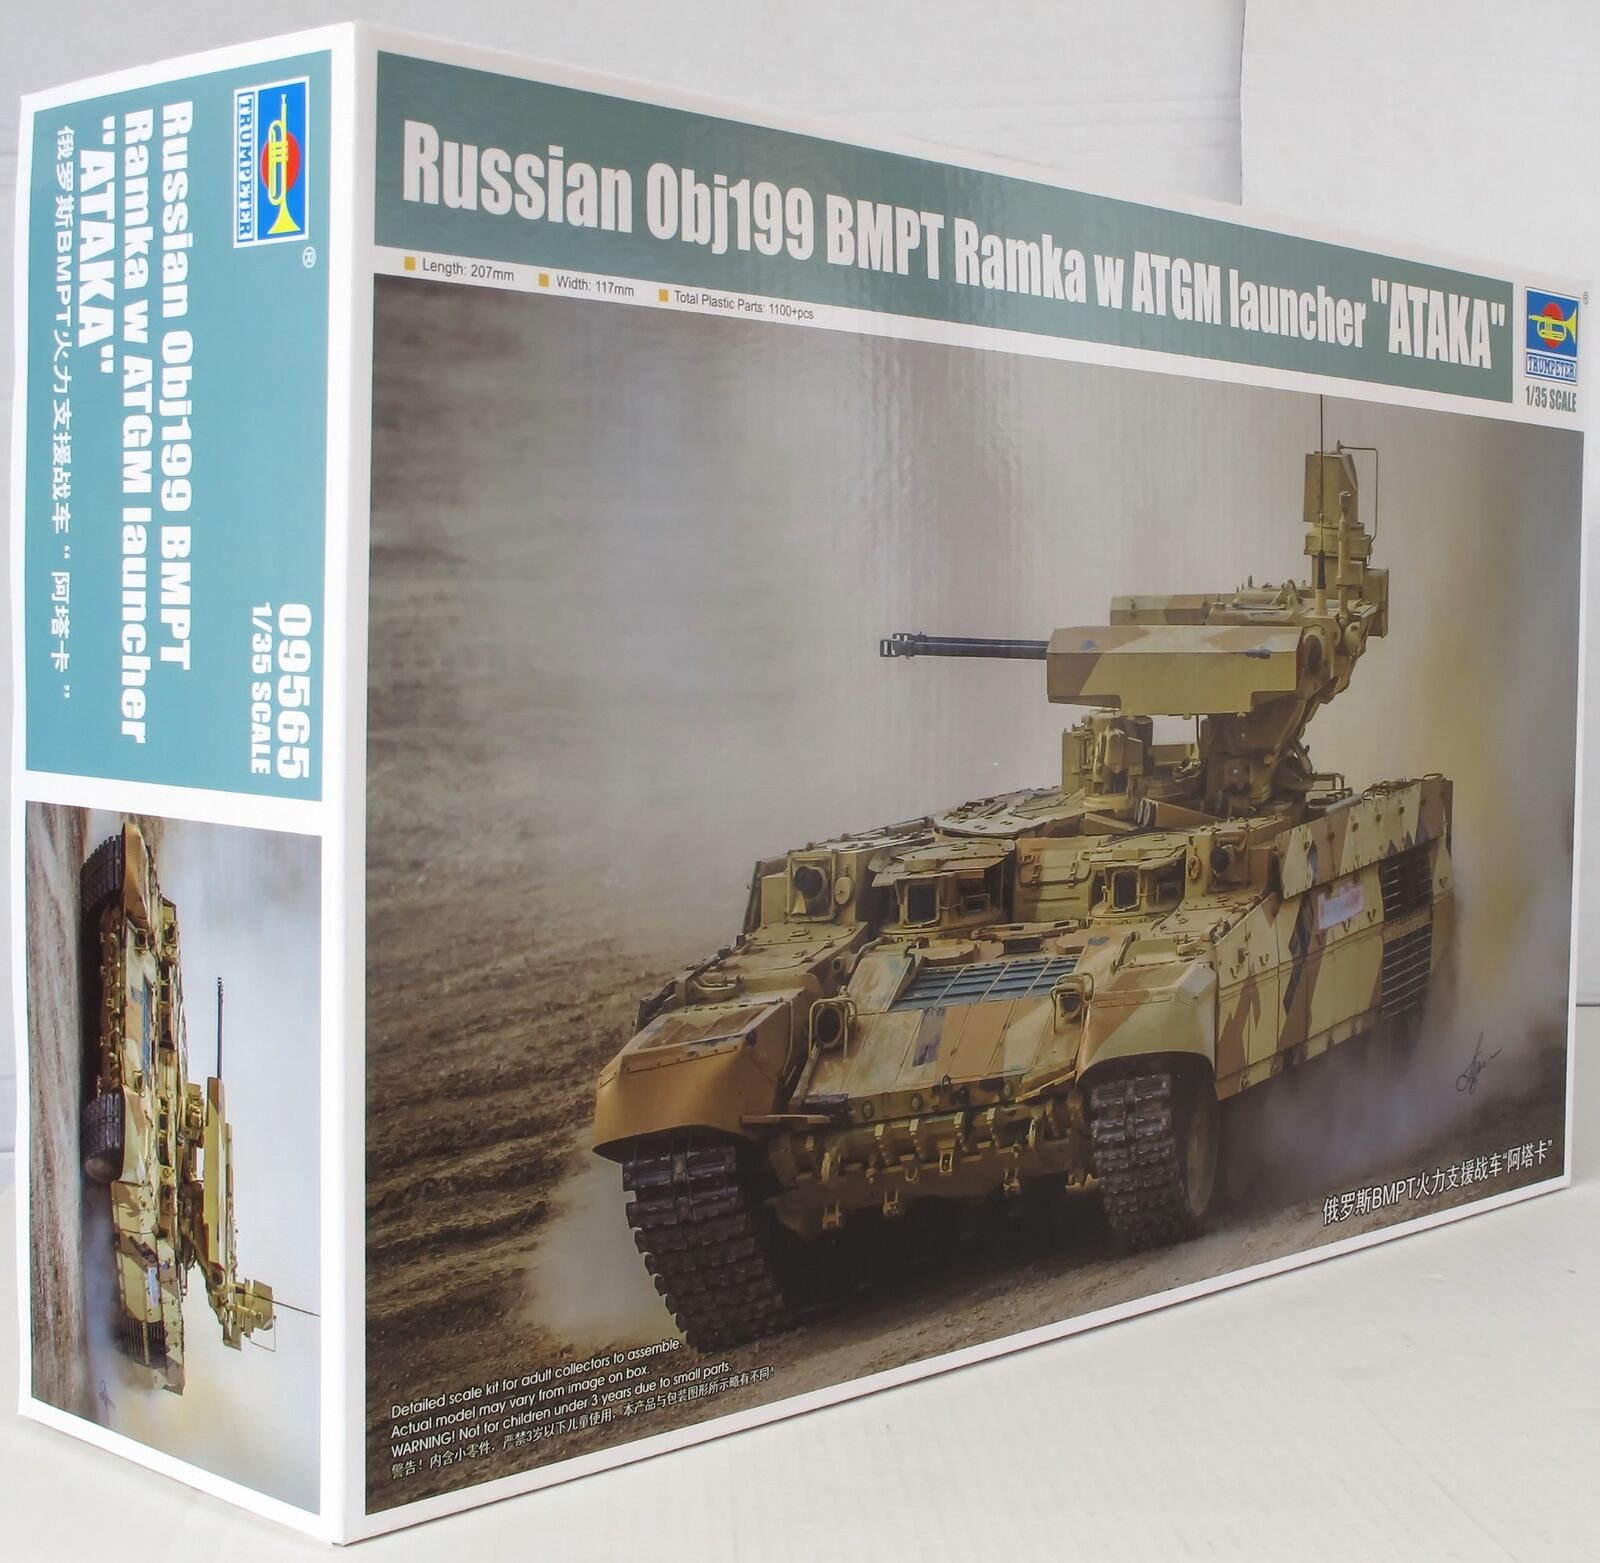 Trumpeter 1 35 09565 Russian Obj 199 BMPT Ramka w ATGM launch Military Model Kit